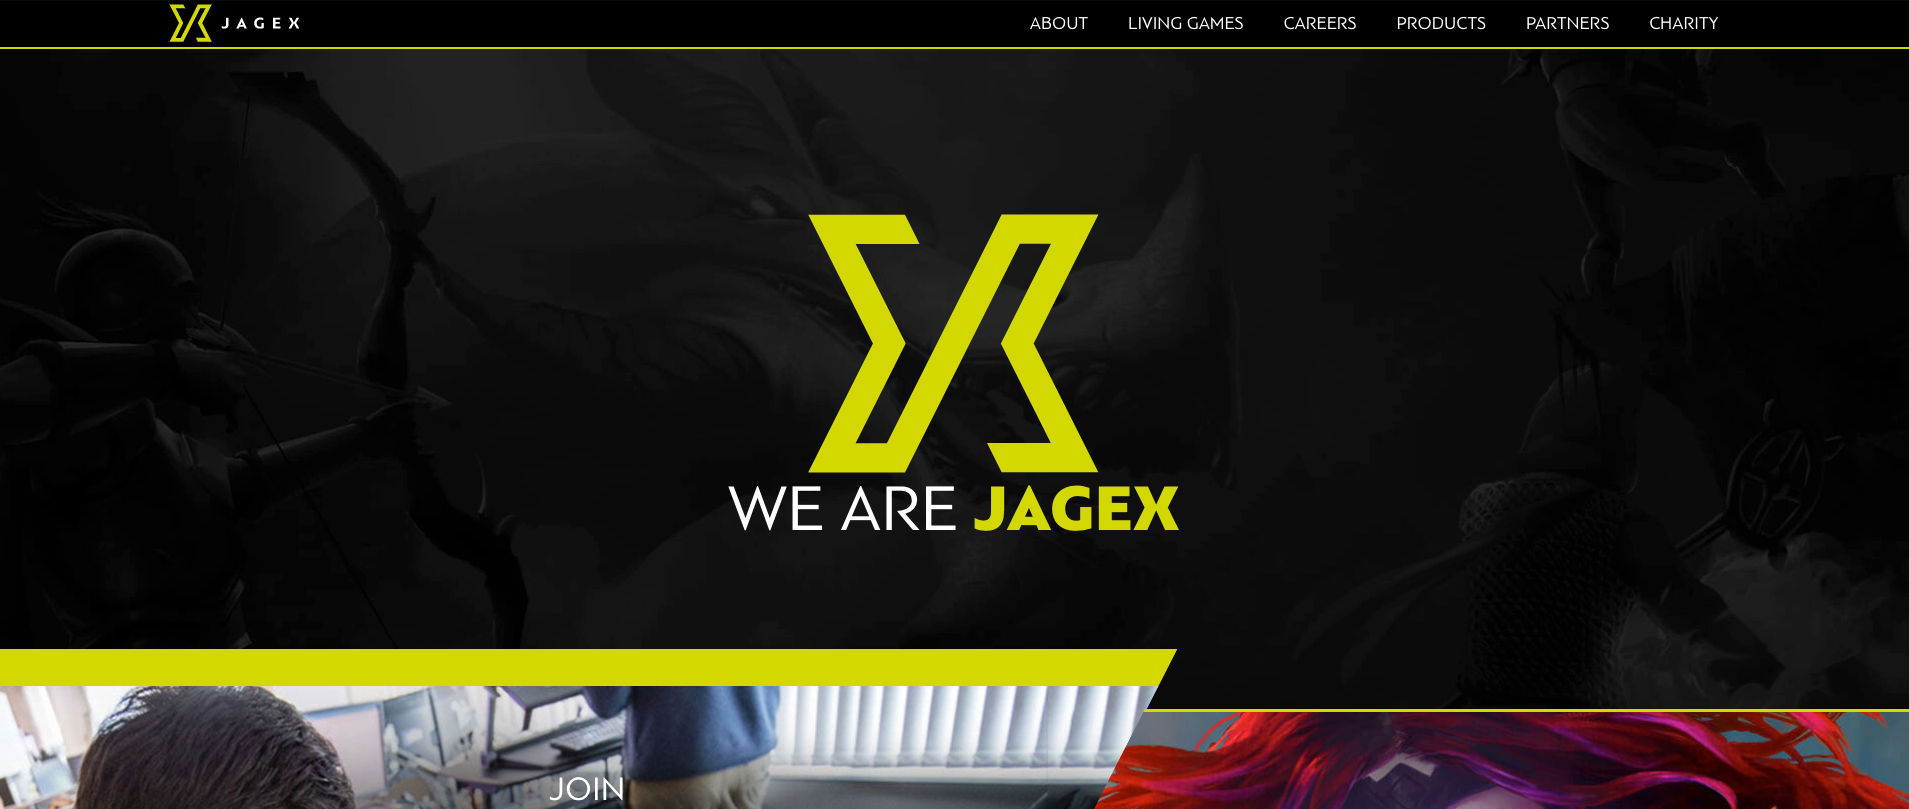 A screenshot of the Jagex home page